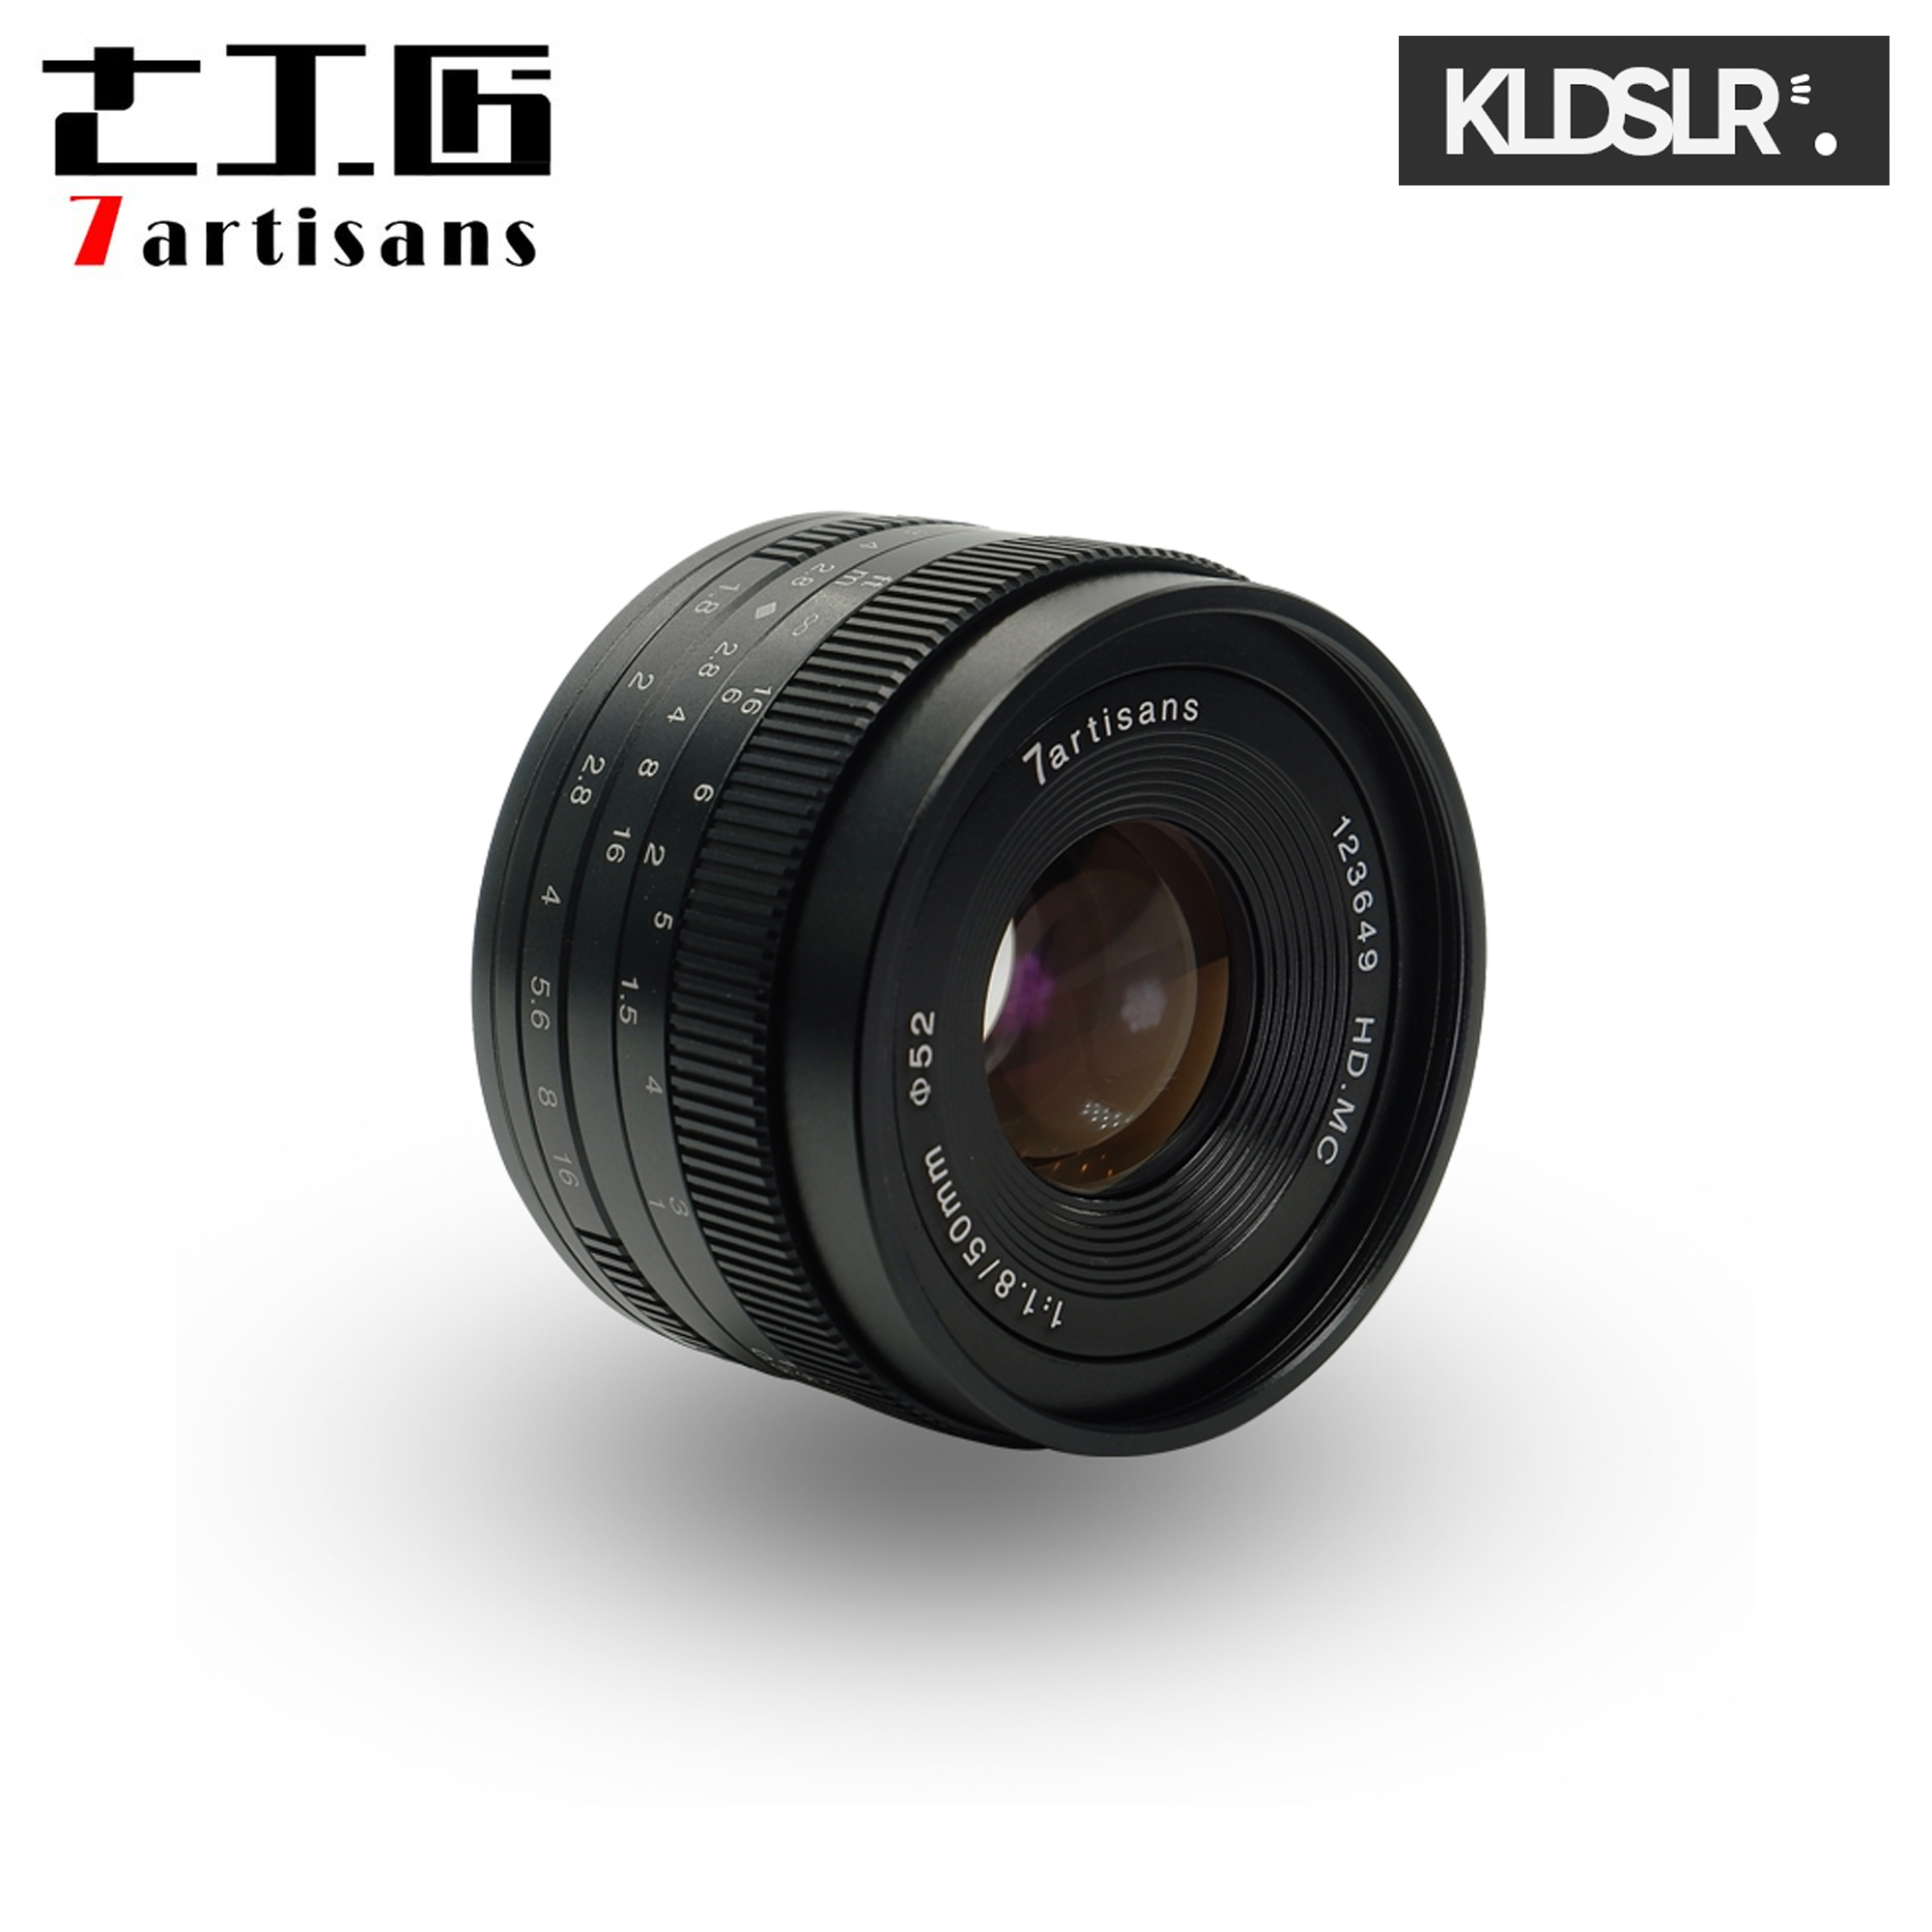 (MERDEKA) 7artisans Photoelectric 50mm f/1.8 Lens for Canon EOS M-Mount Cameras (Canon Mirrorless)